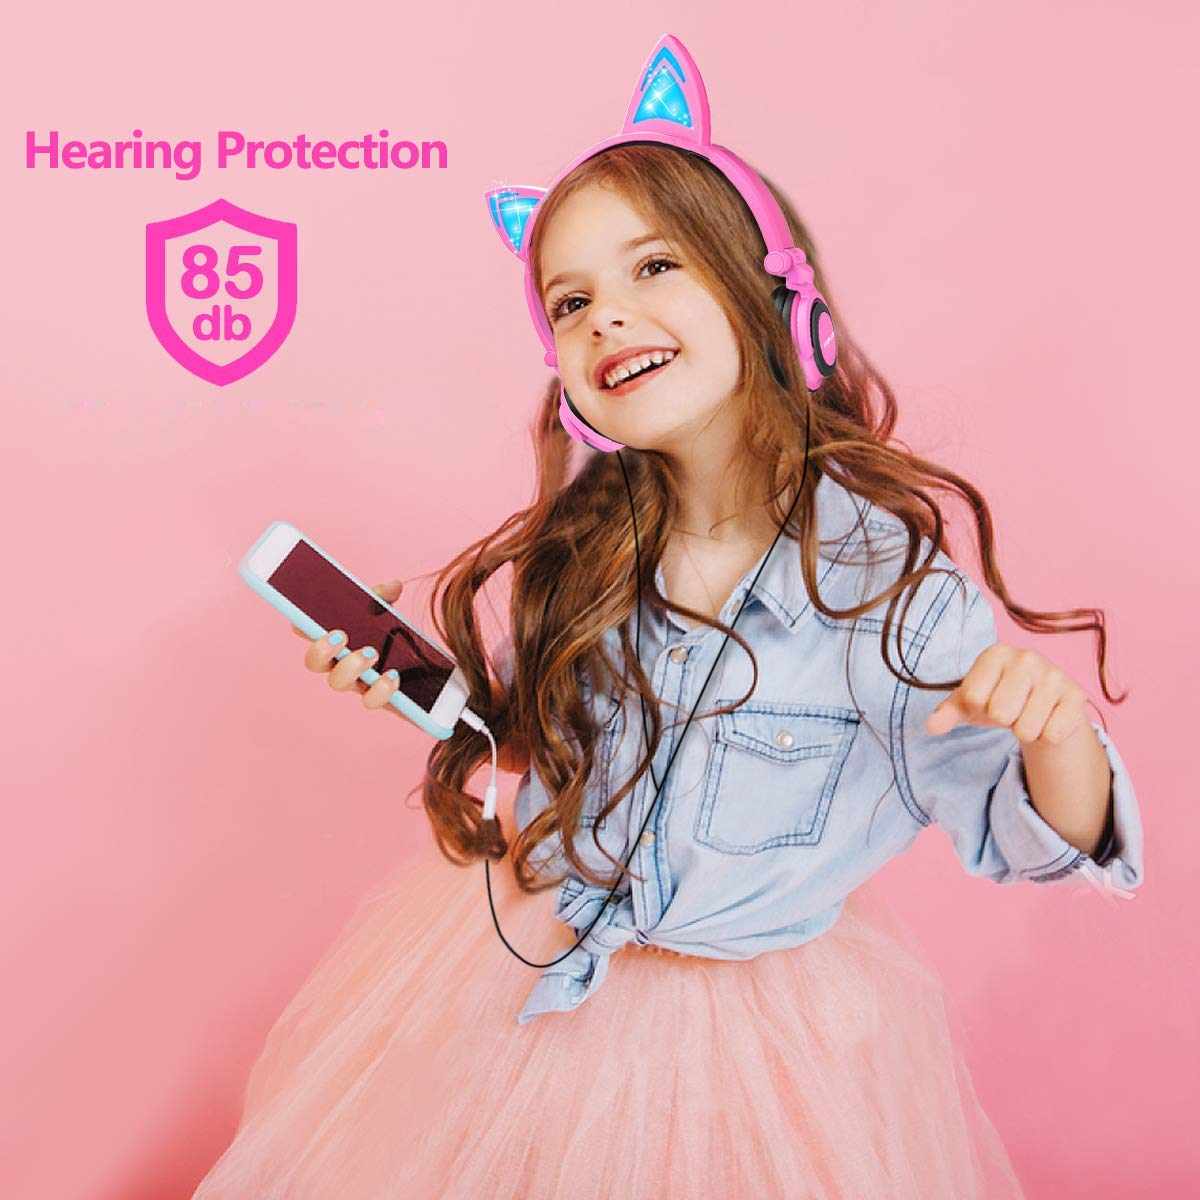 Barsone Cat Ear Headphones, Wired Cat Ear Earphones with Glowing Lights Cosplay Fancy Foldable Over Ear Headsets with Led Light Up / 3.5mm Earphone for Kids,Children,Girls ,Boys (Pink)